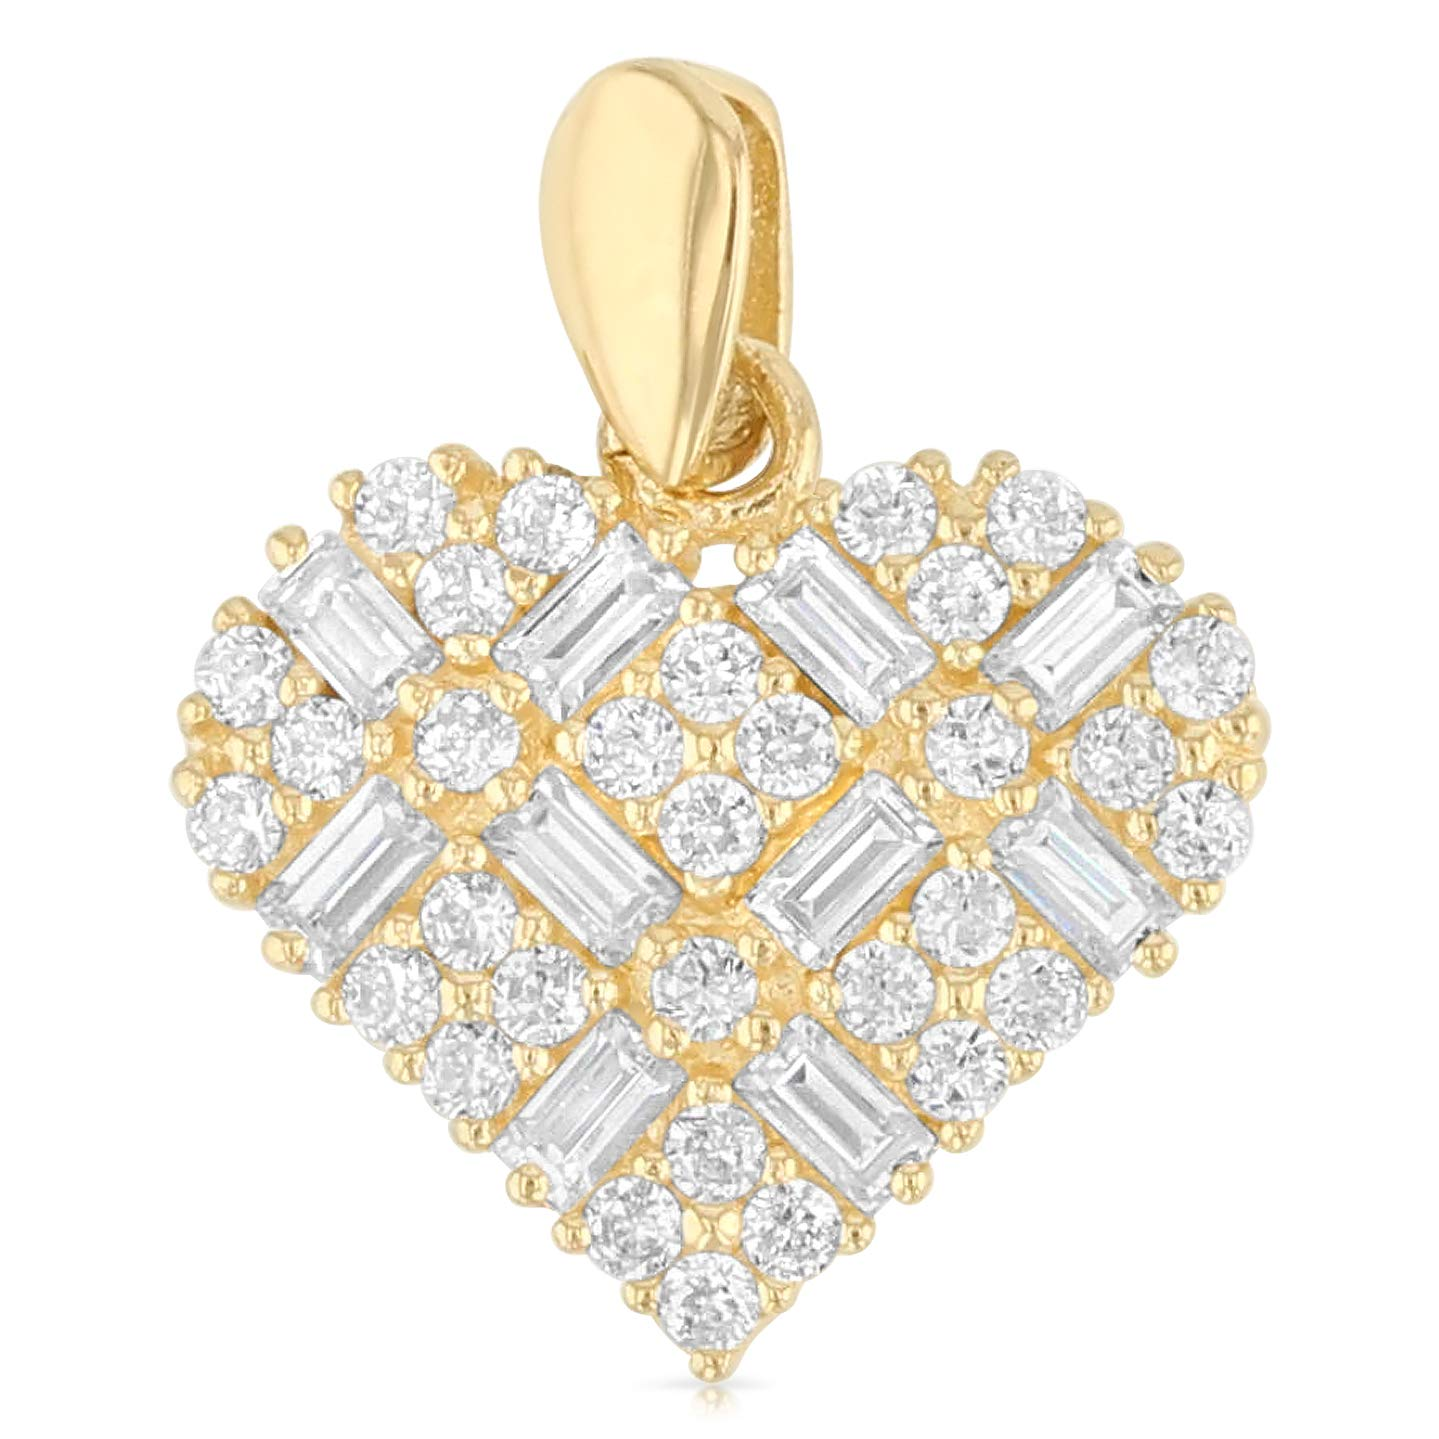 14K Yellow Gold Heart Cross Hatch Cubic Zirconia CZ Charm Pendant with 1.6mm Figaro 3+1 Chain Necklace